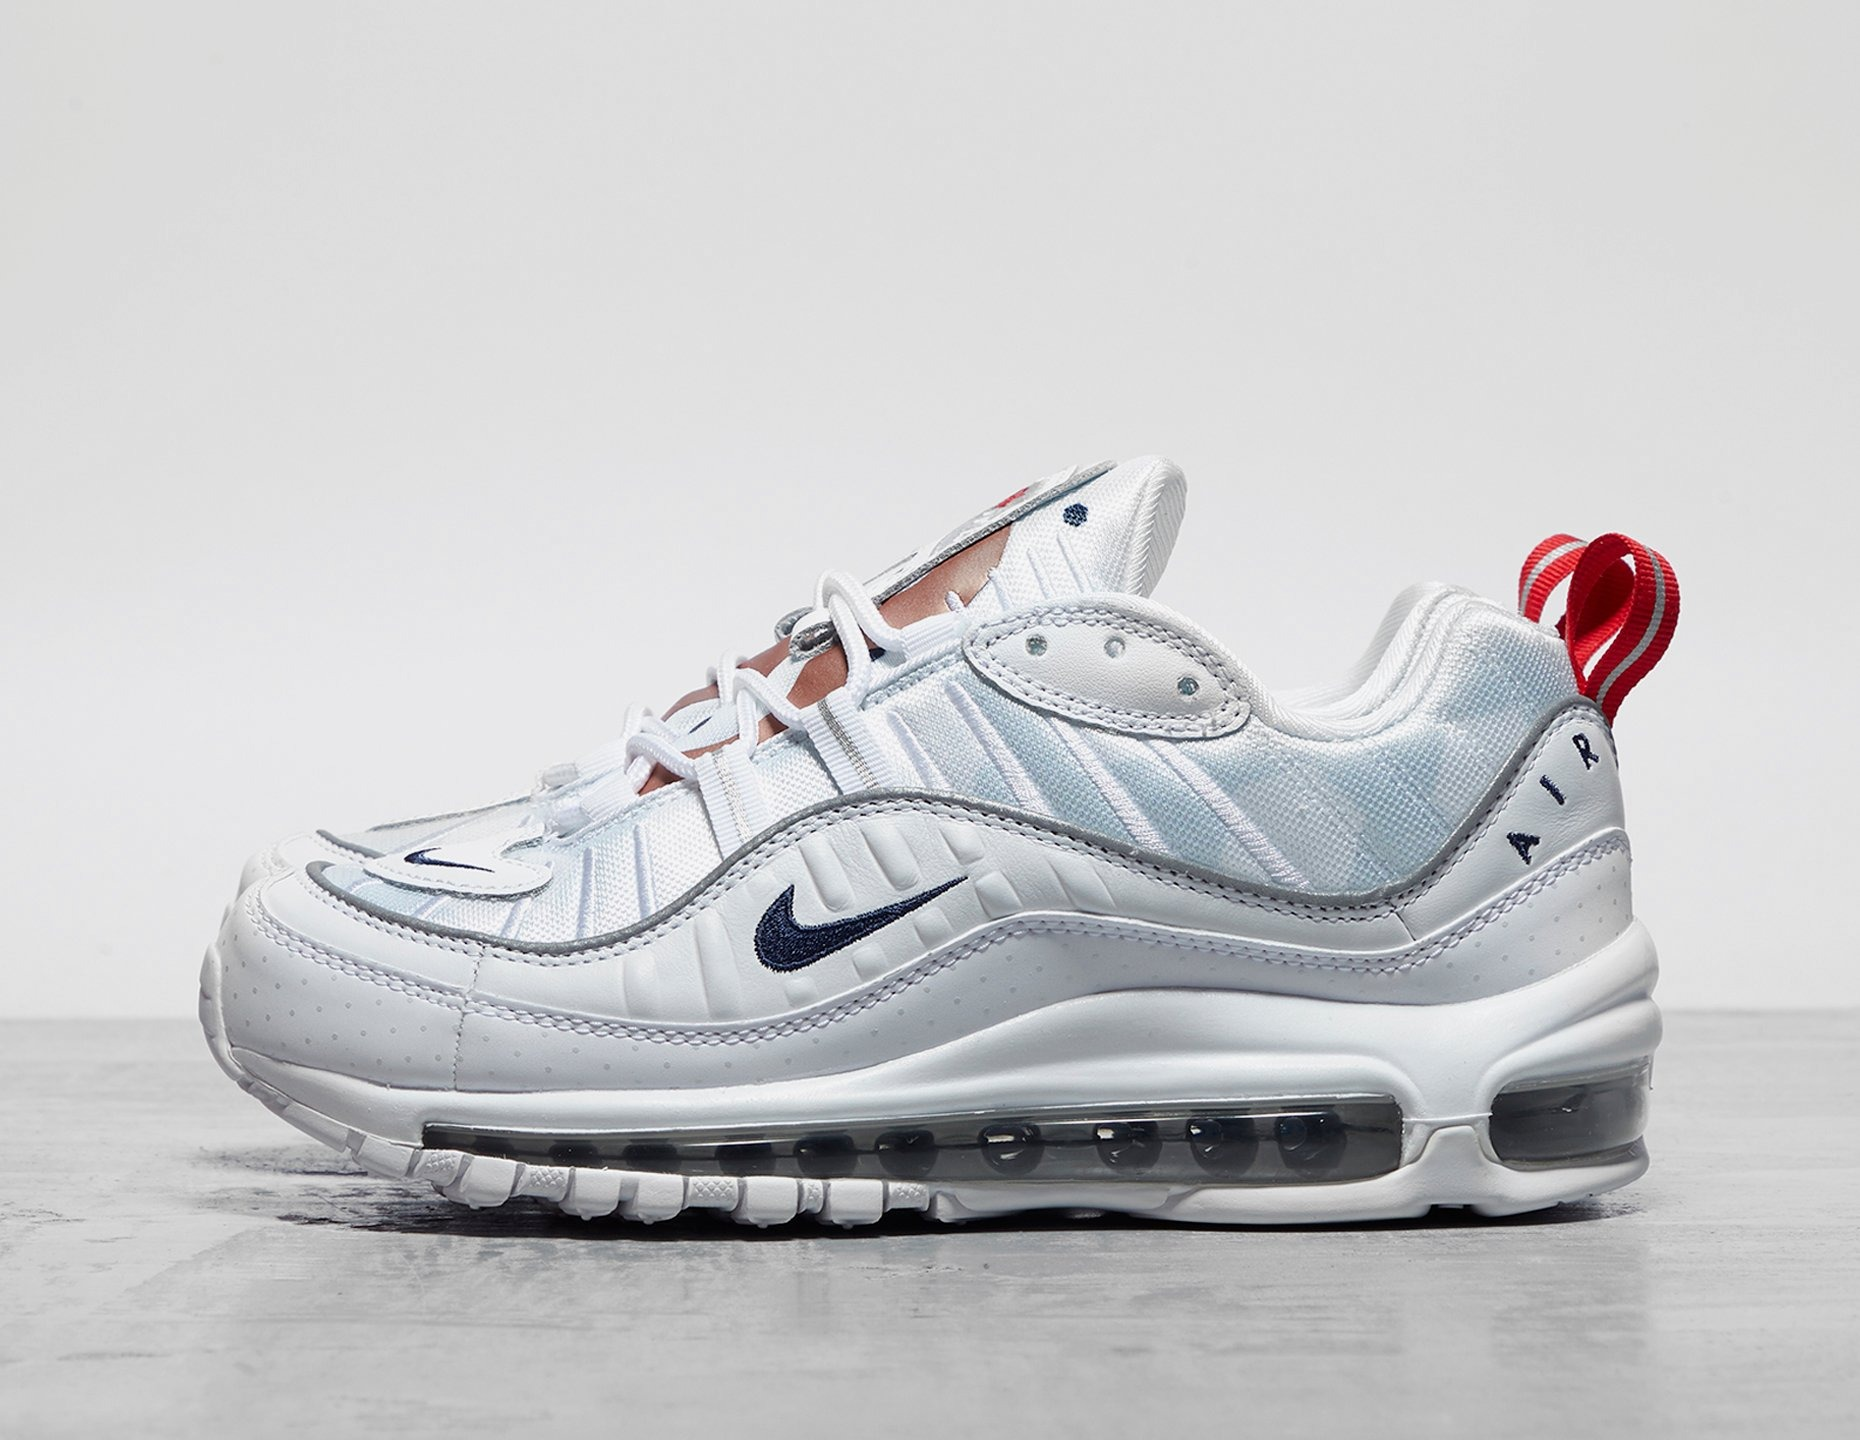 Nike Air Max 98 Premium 'Unité Totale' Women's | Footpatrol